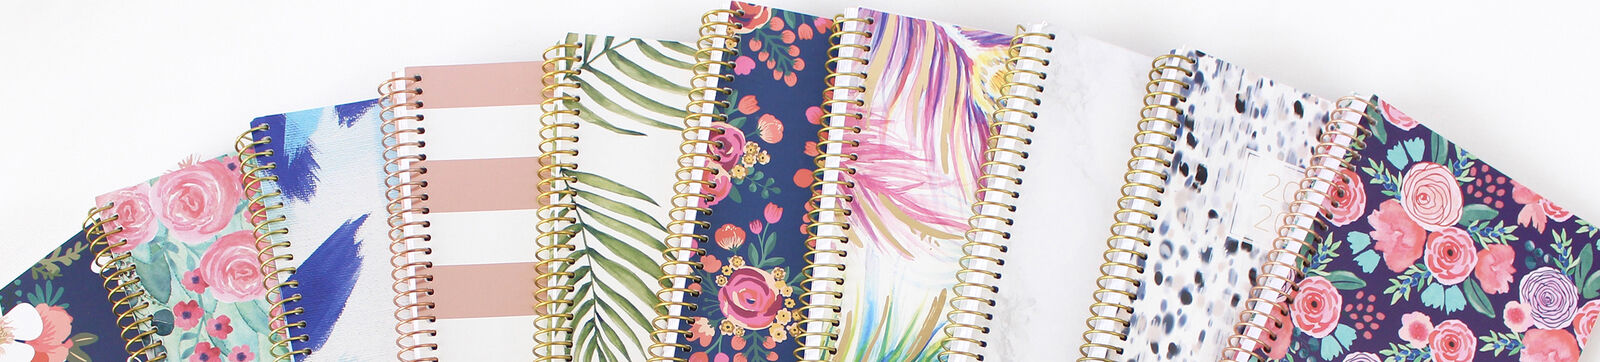 bloom daily planners®